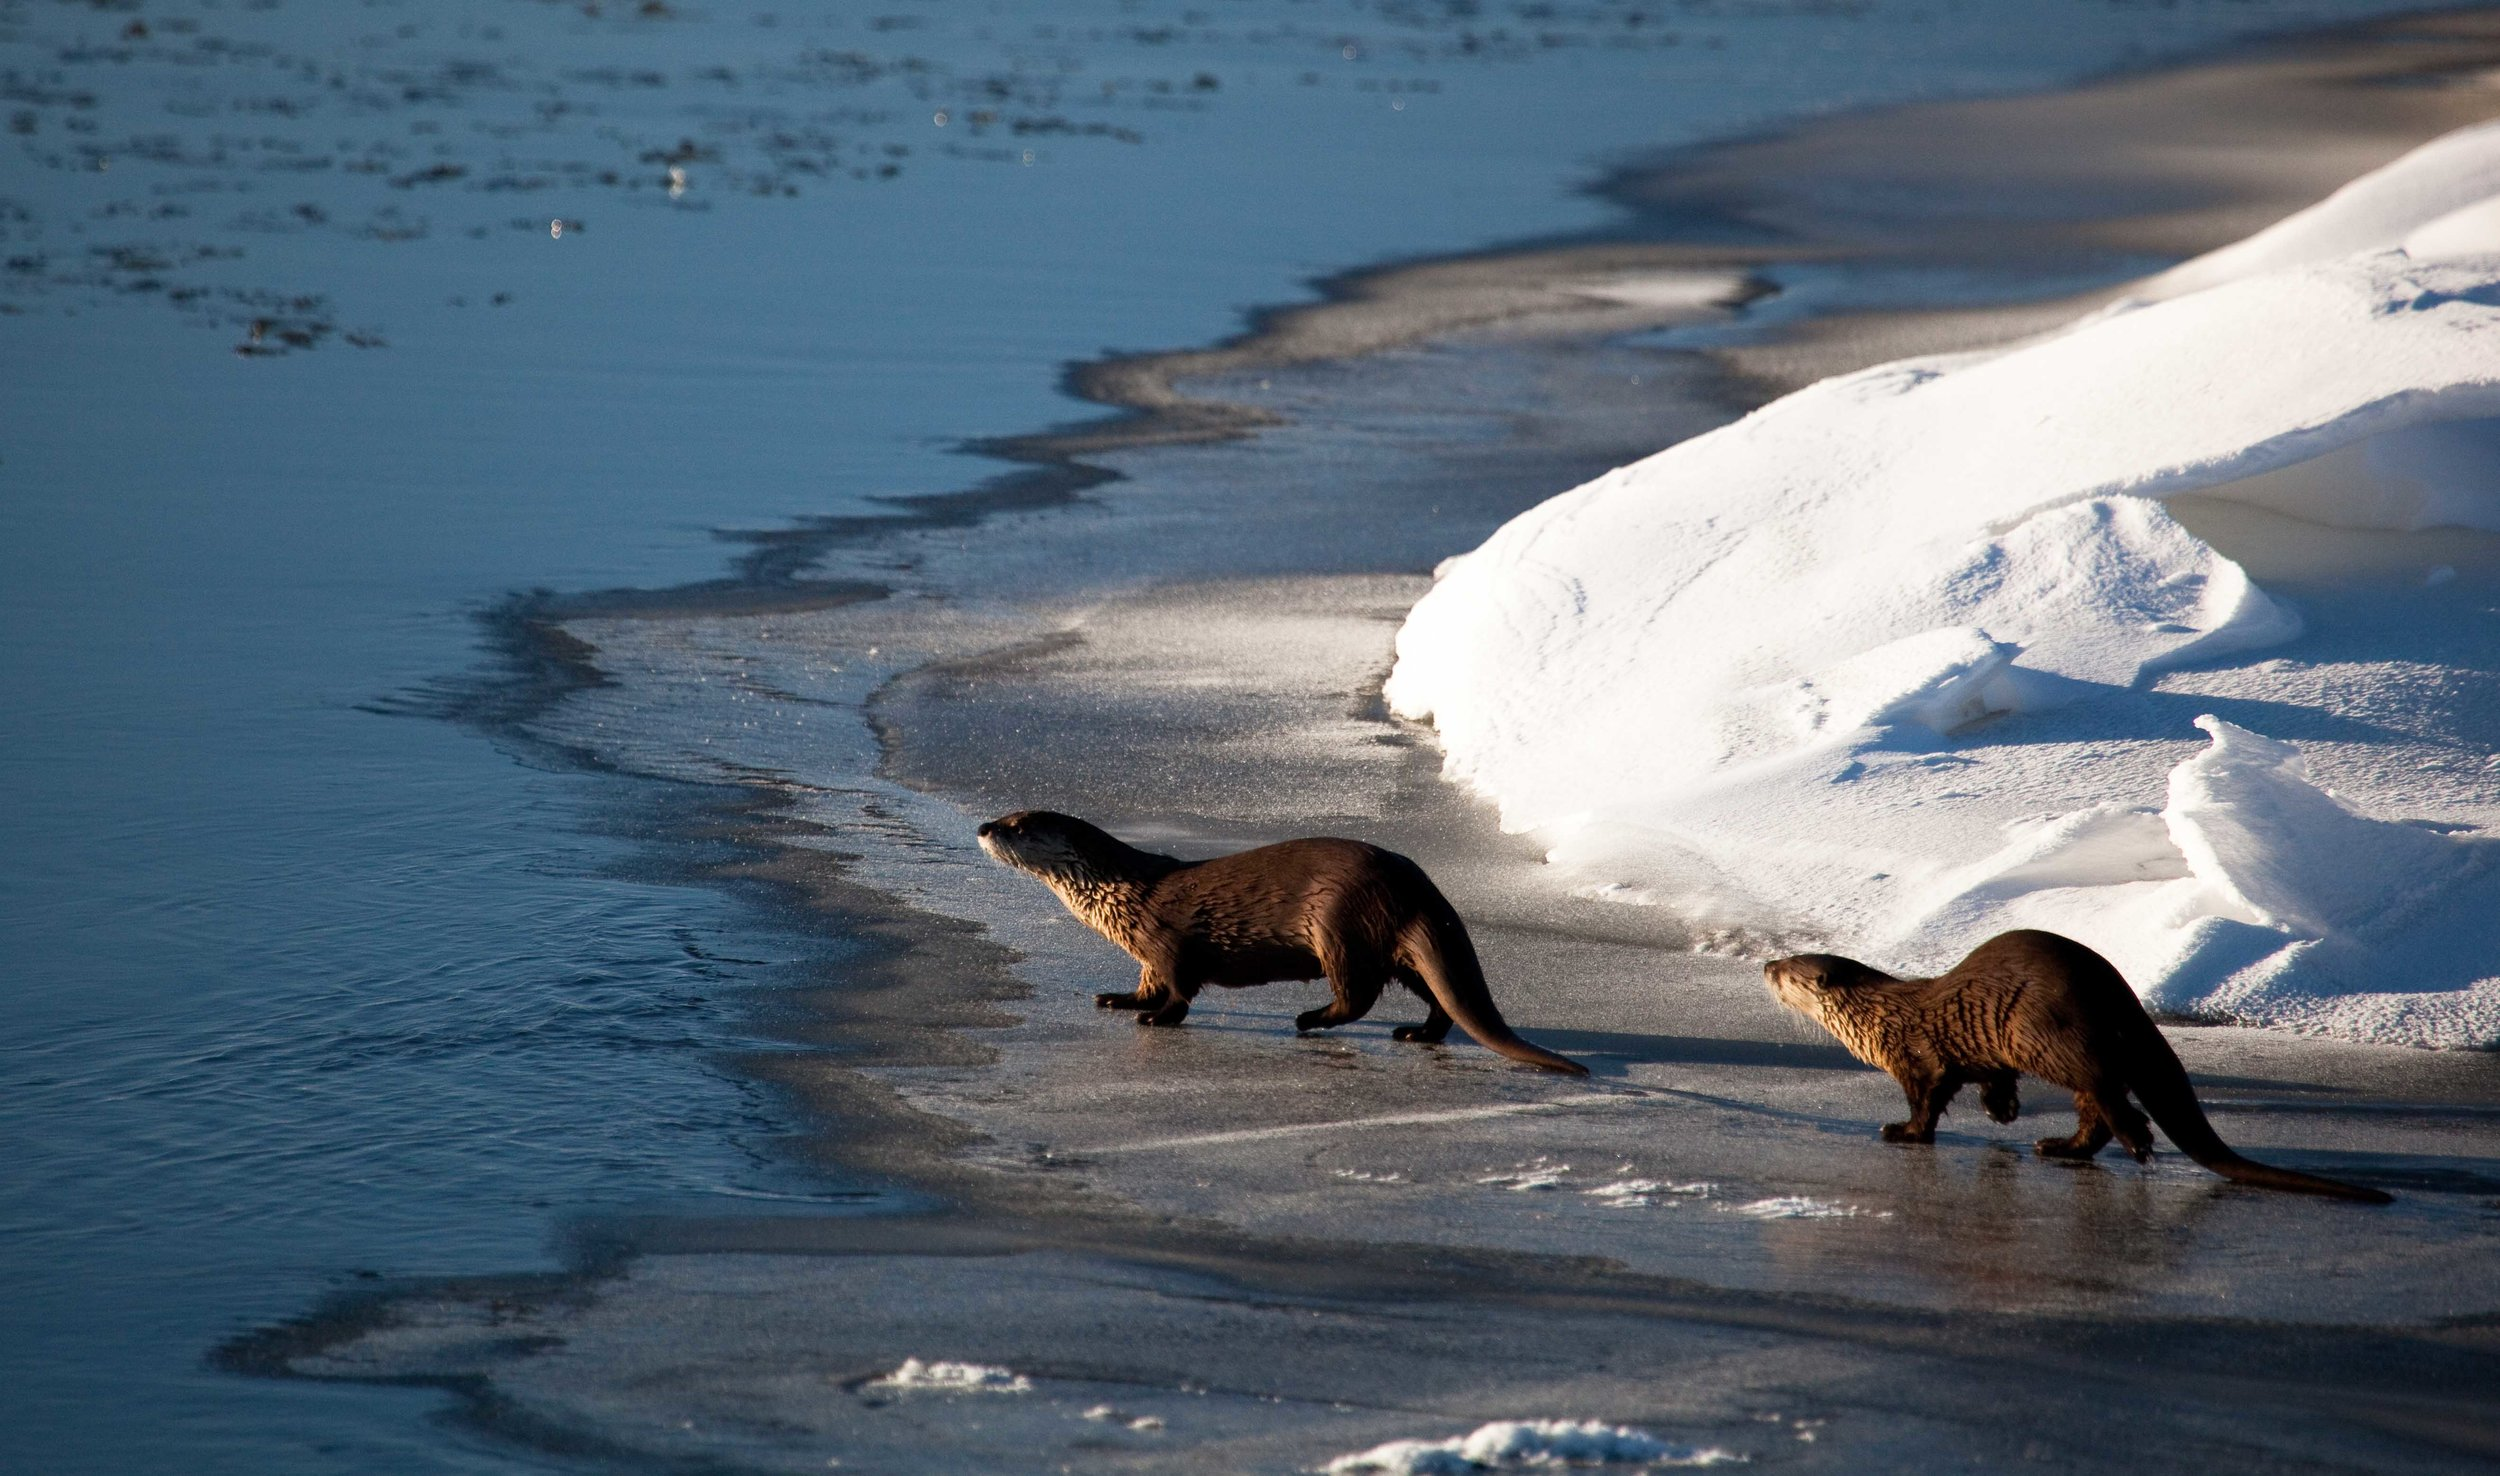 Otters Walk Along the Icy Water's Edge